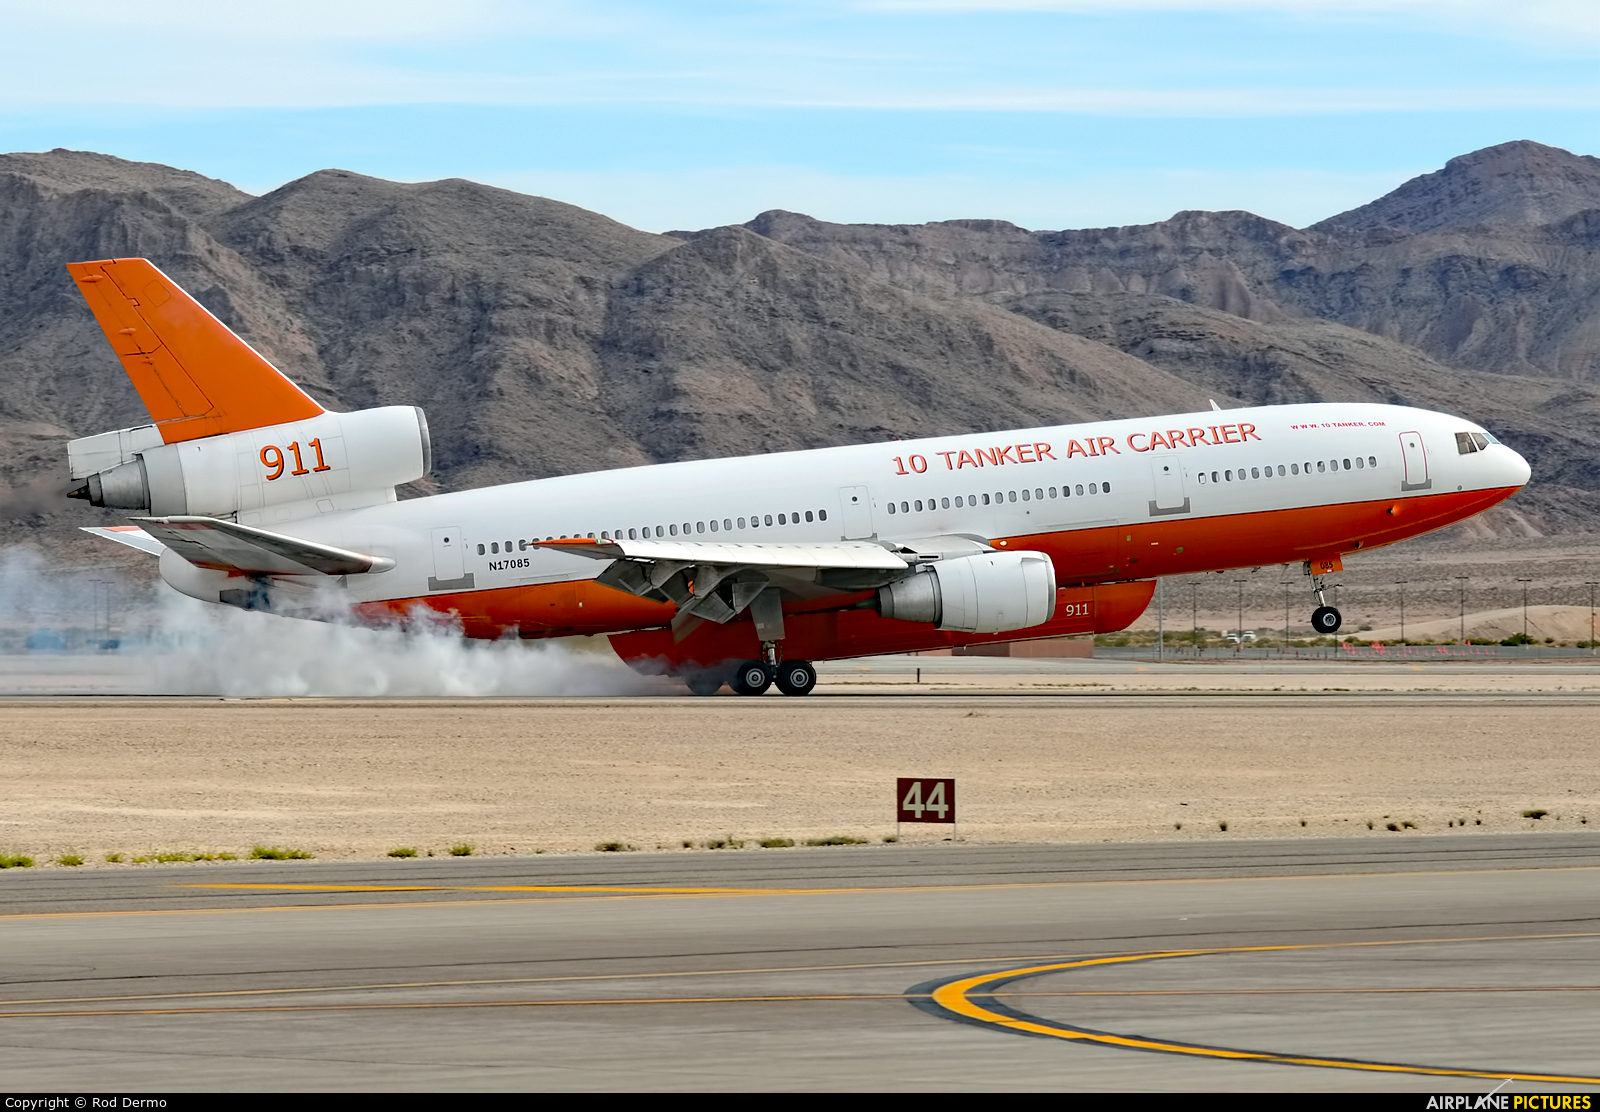 10 Tanker Air Carrier N17085 aircraft at Nellis AFB